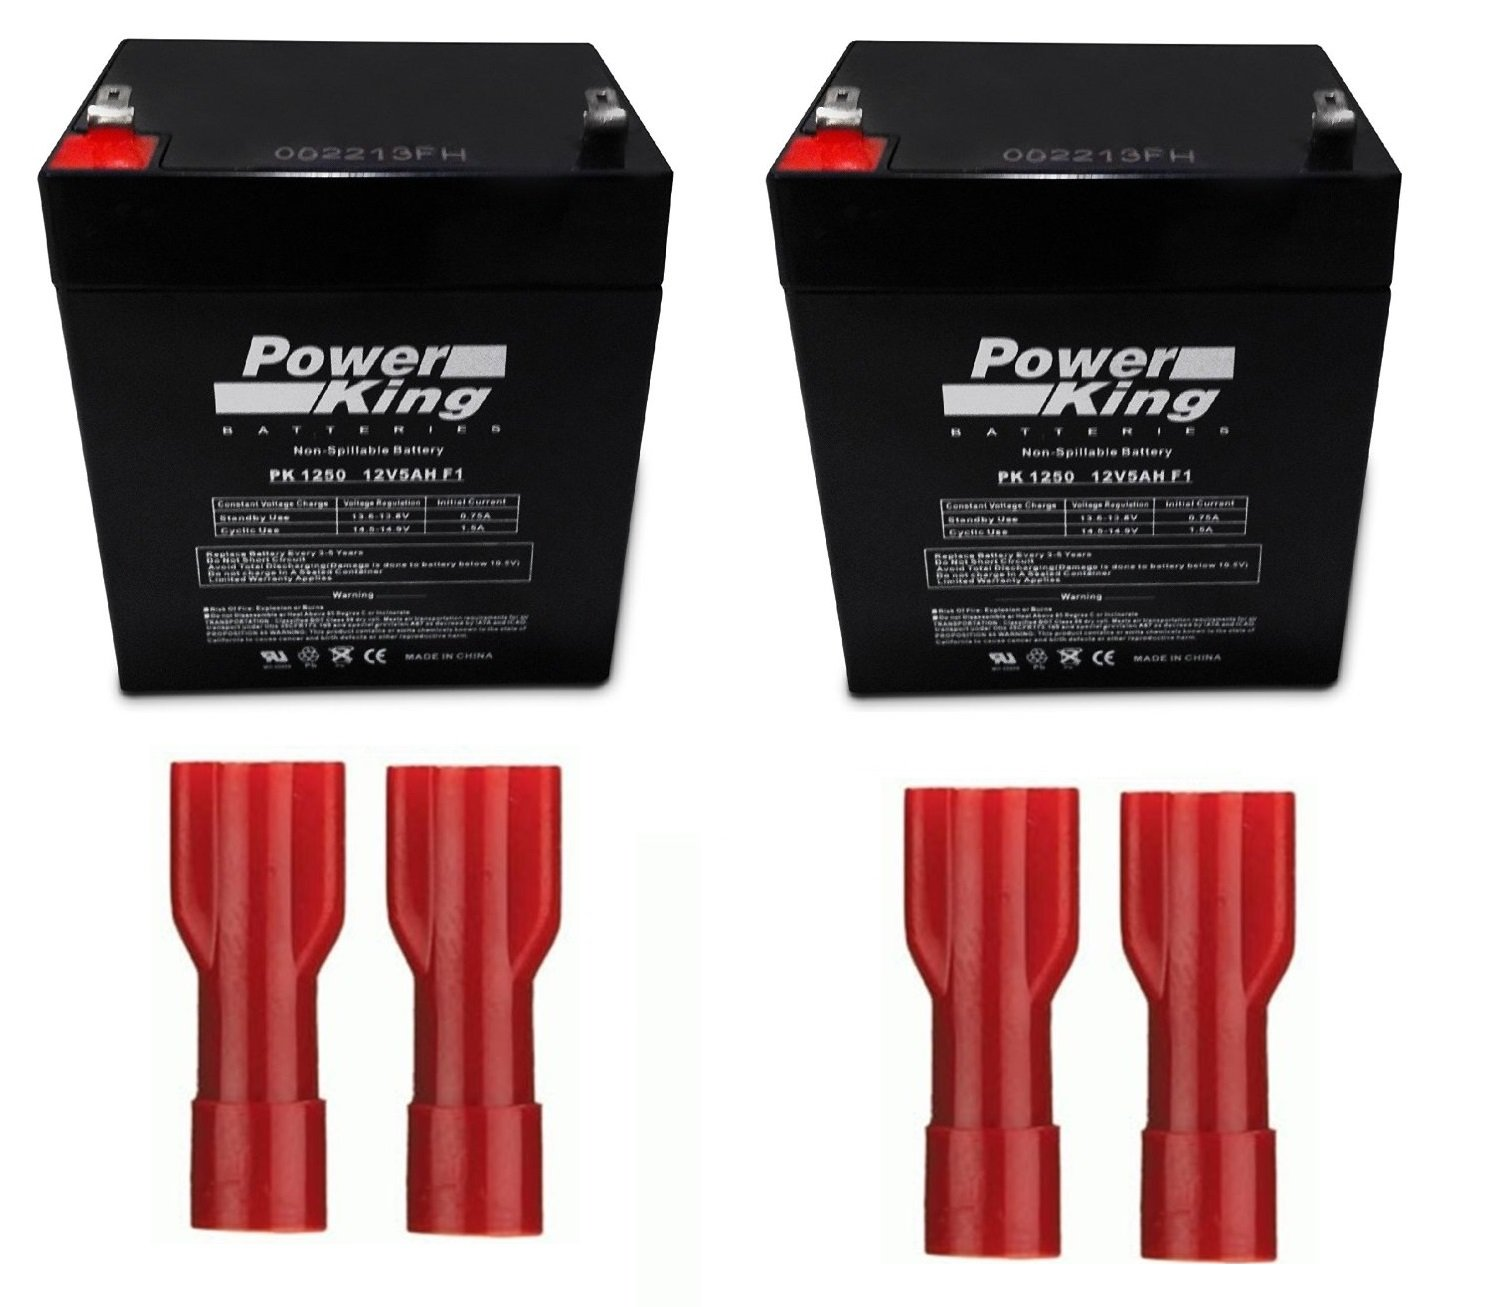 41B591 Battery Replacement for BBU Includes 2 Batteries- Terminals Beiter DC Power